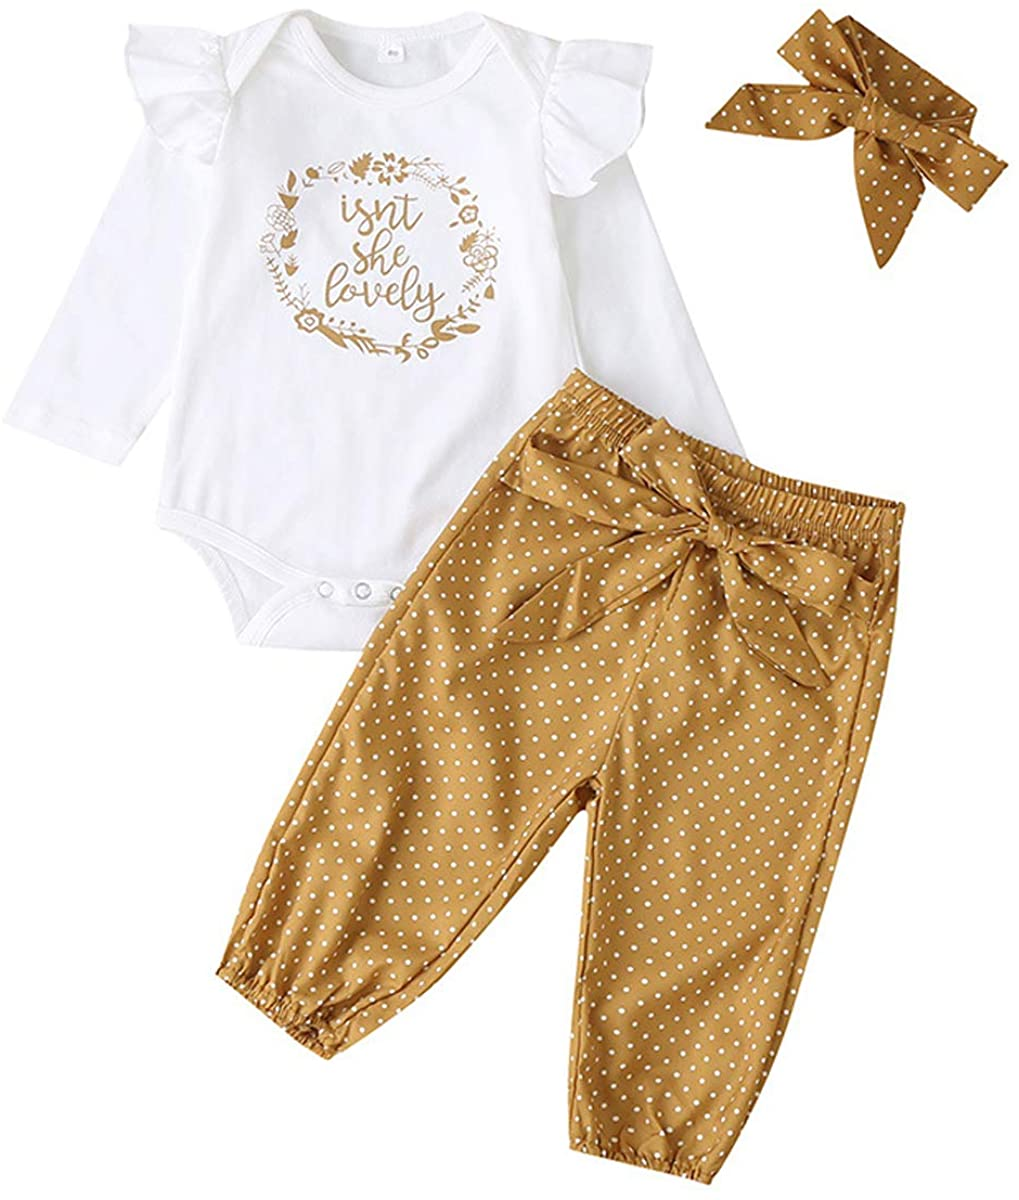 Long Sleeve Ruffle Sleeve Top, Floral Long Pants, Headband Toddler Infant Outfits for Fall, 3PCS Baby Girl Clothes